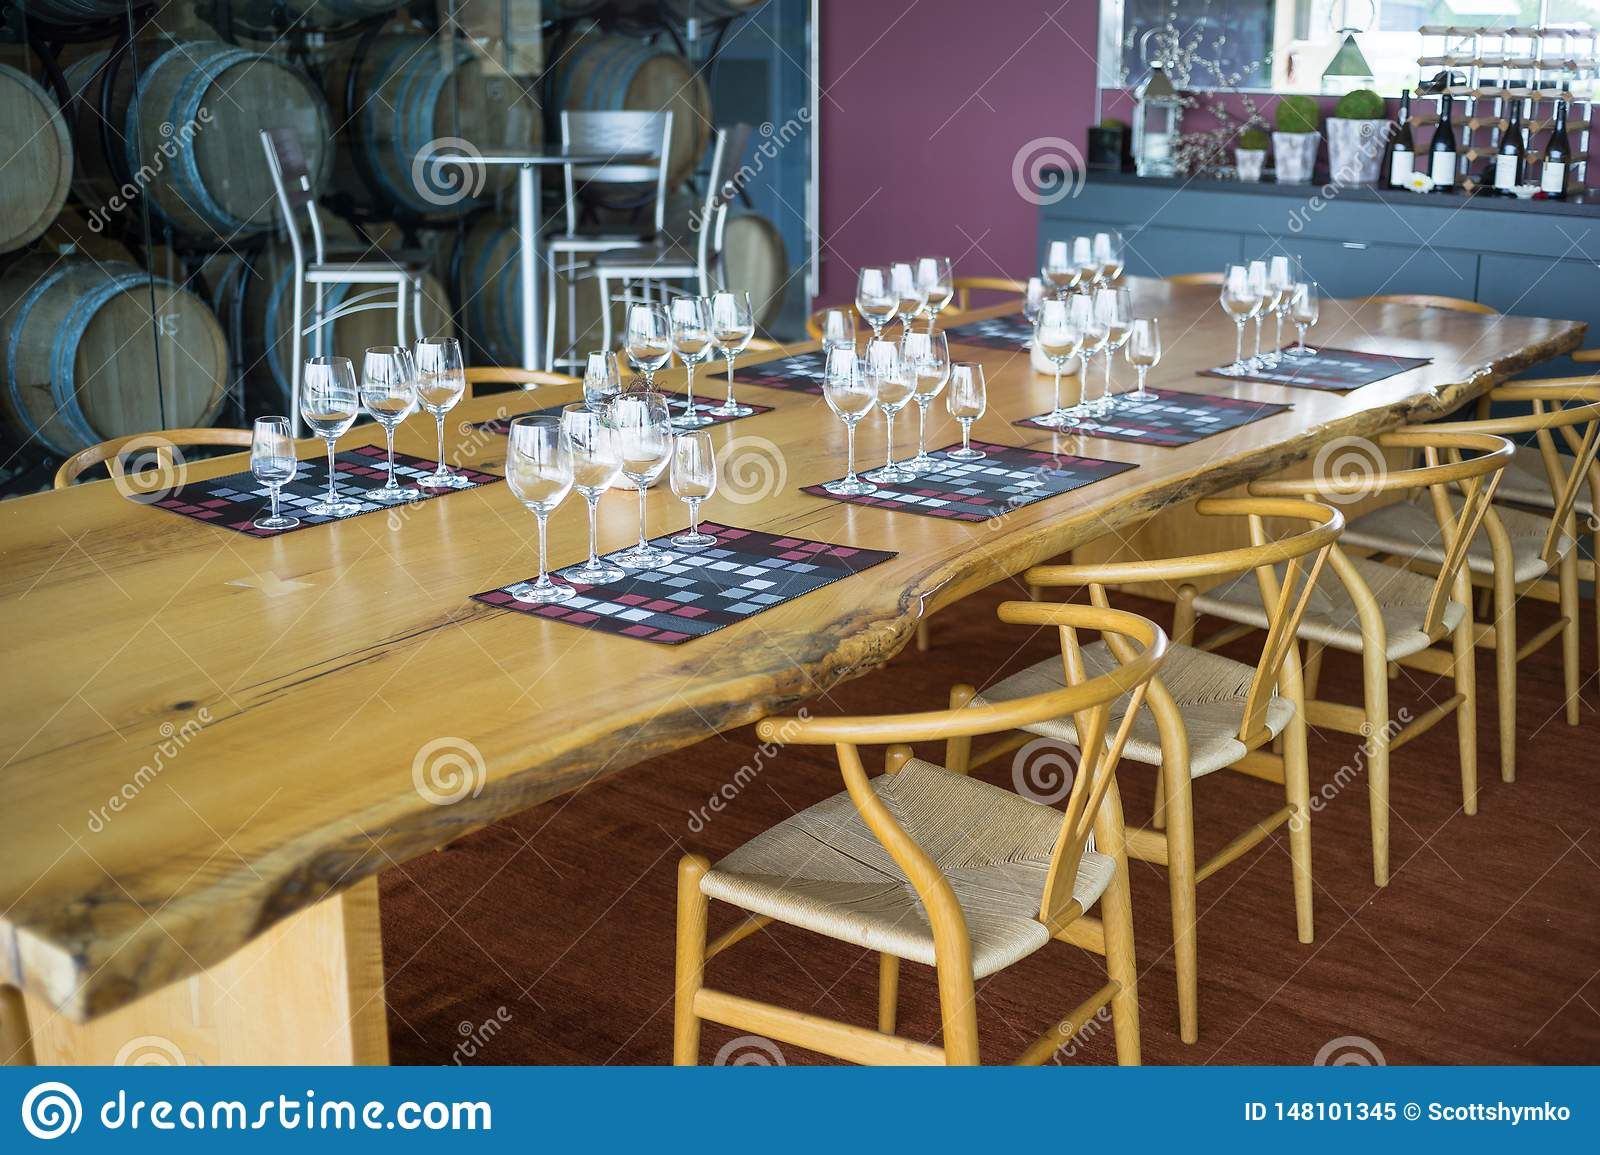 A dining room table set for wine sampling